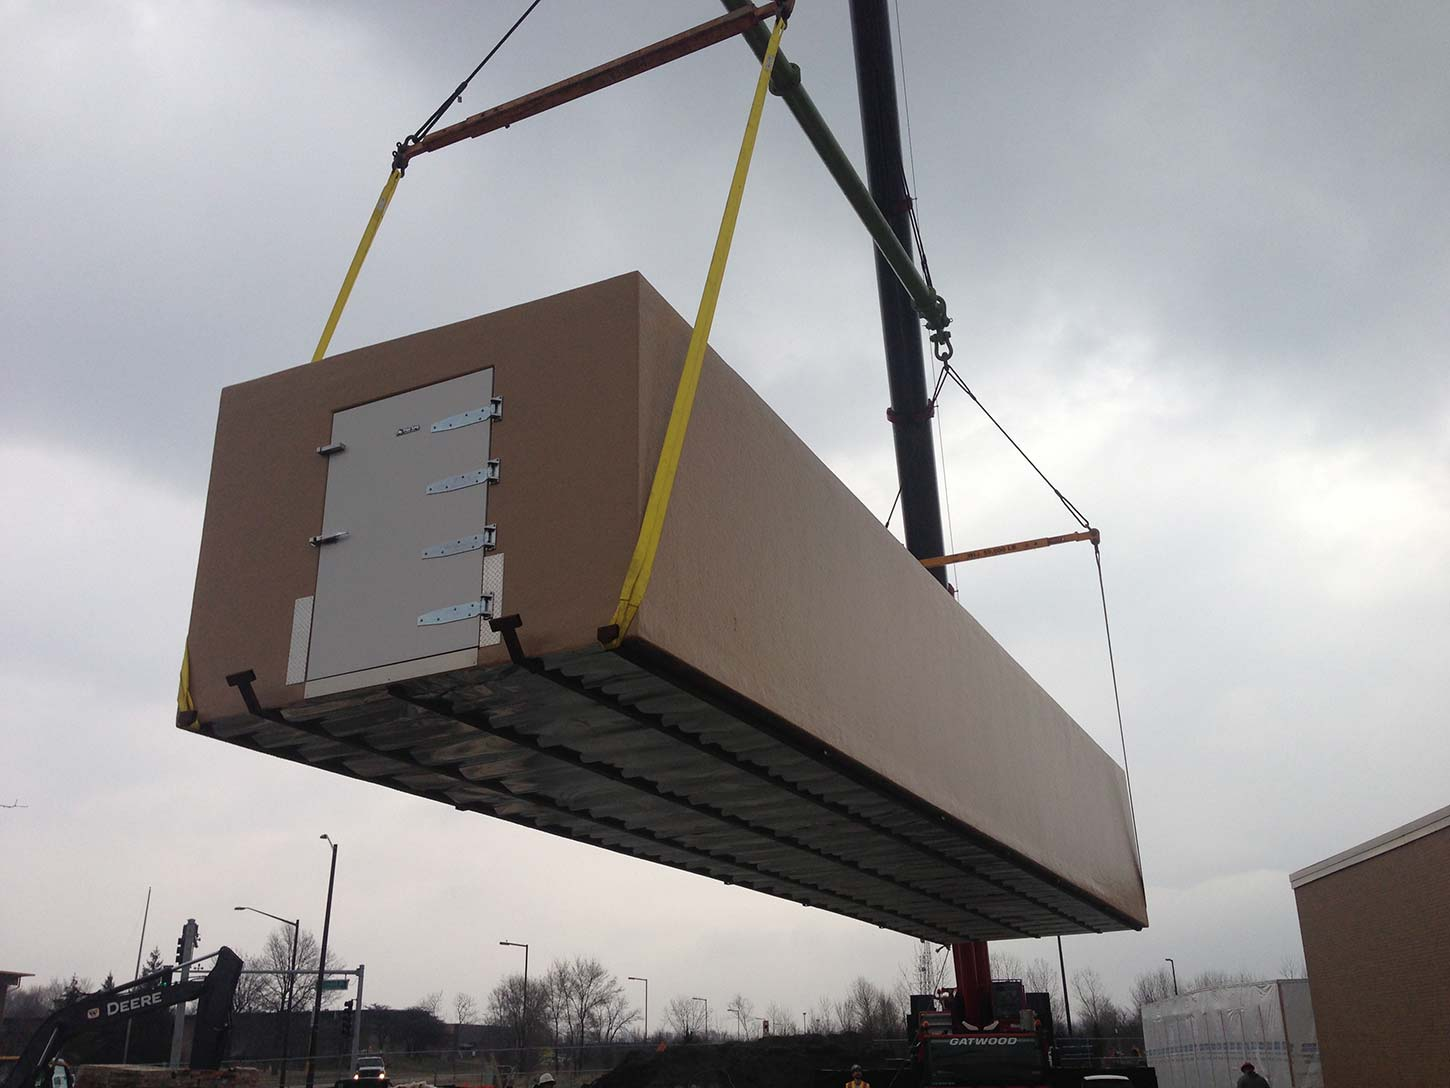 Crane lifting a tan colored walk in freezer for delivery